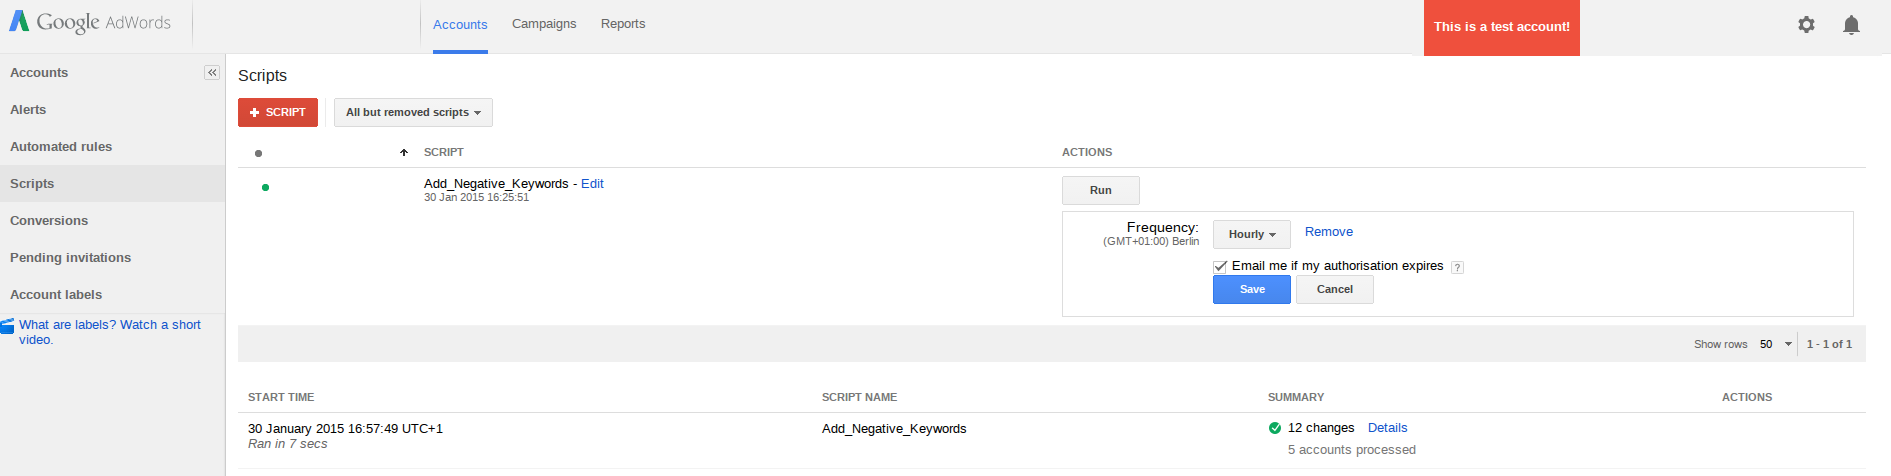 Adding Adwords Scripts